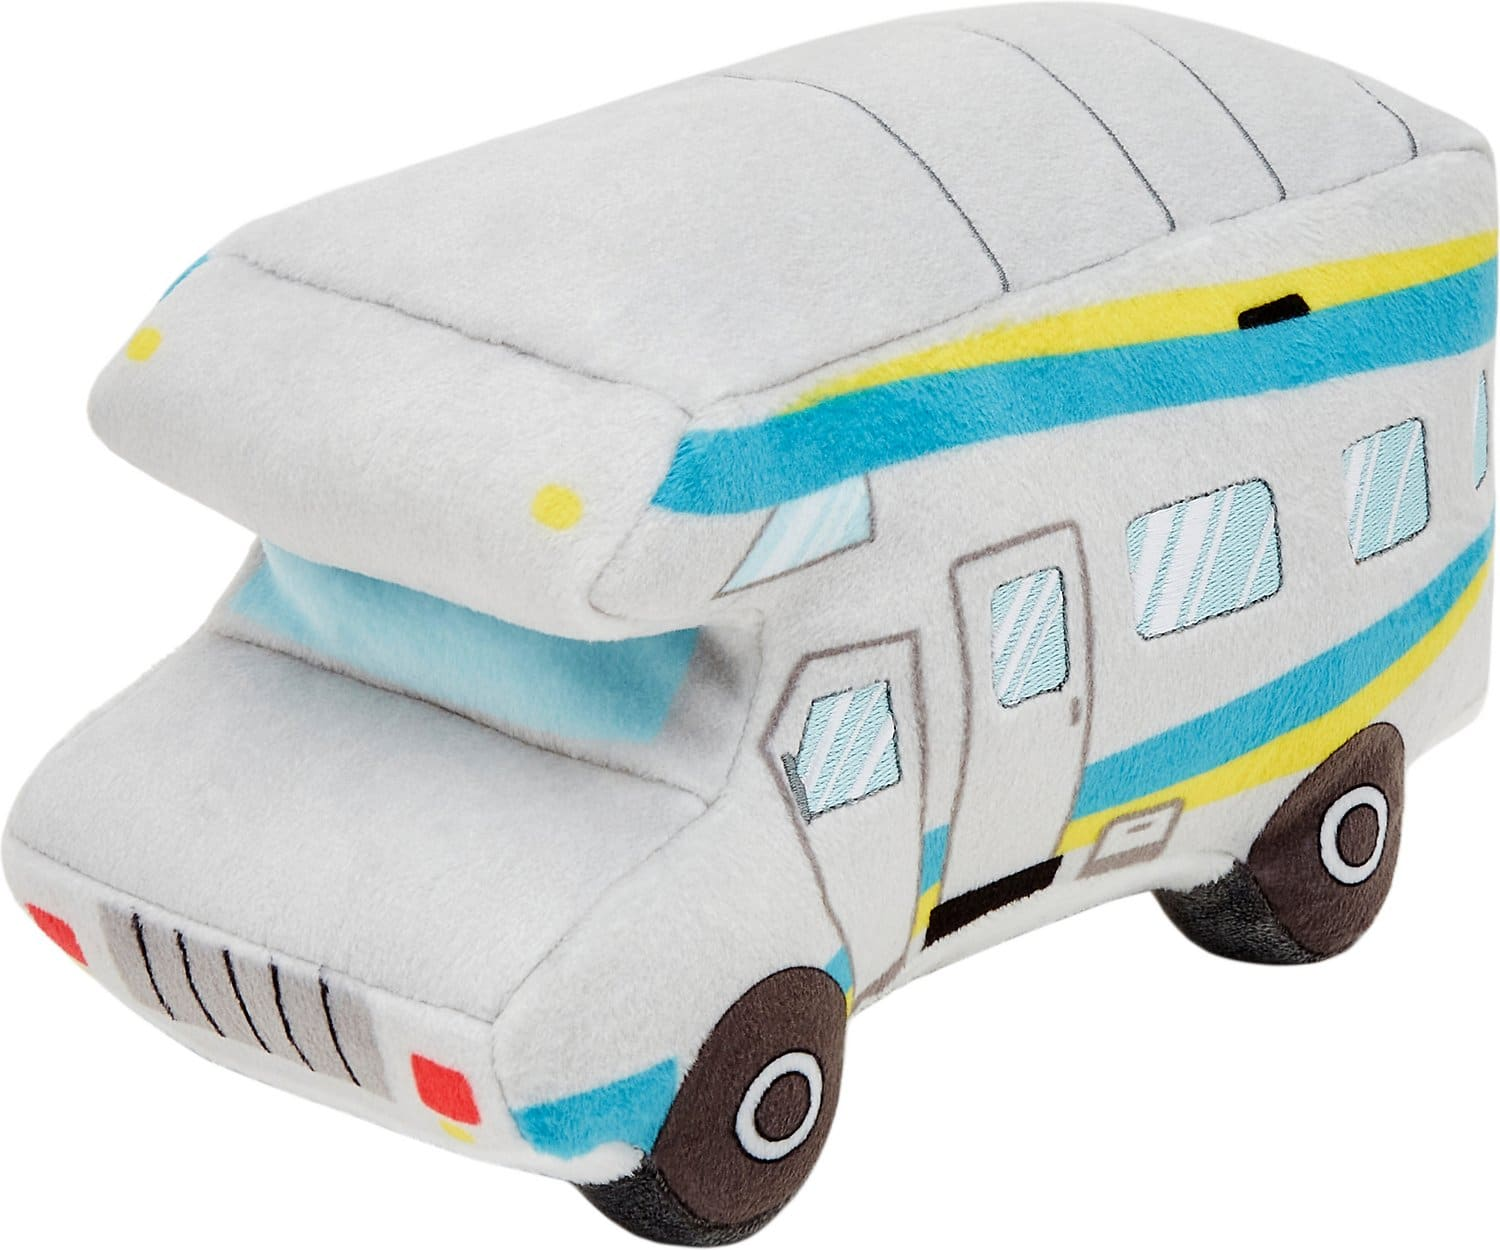 White and blue plush campervan dog toy with black wheels